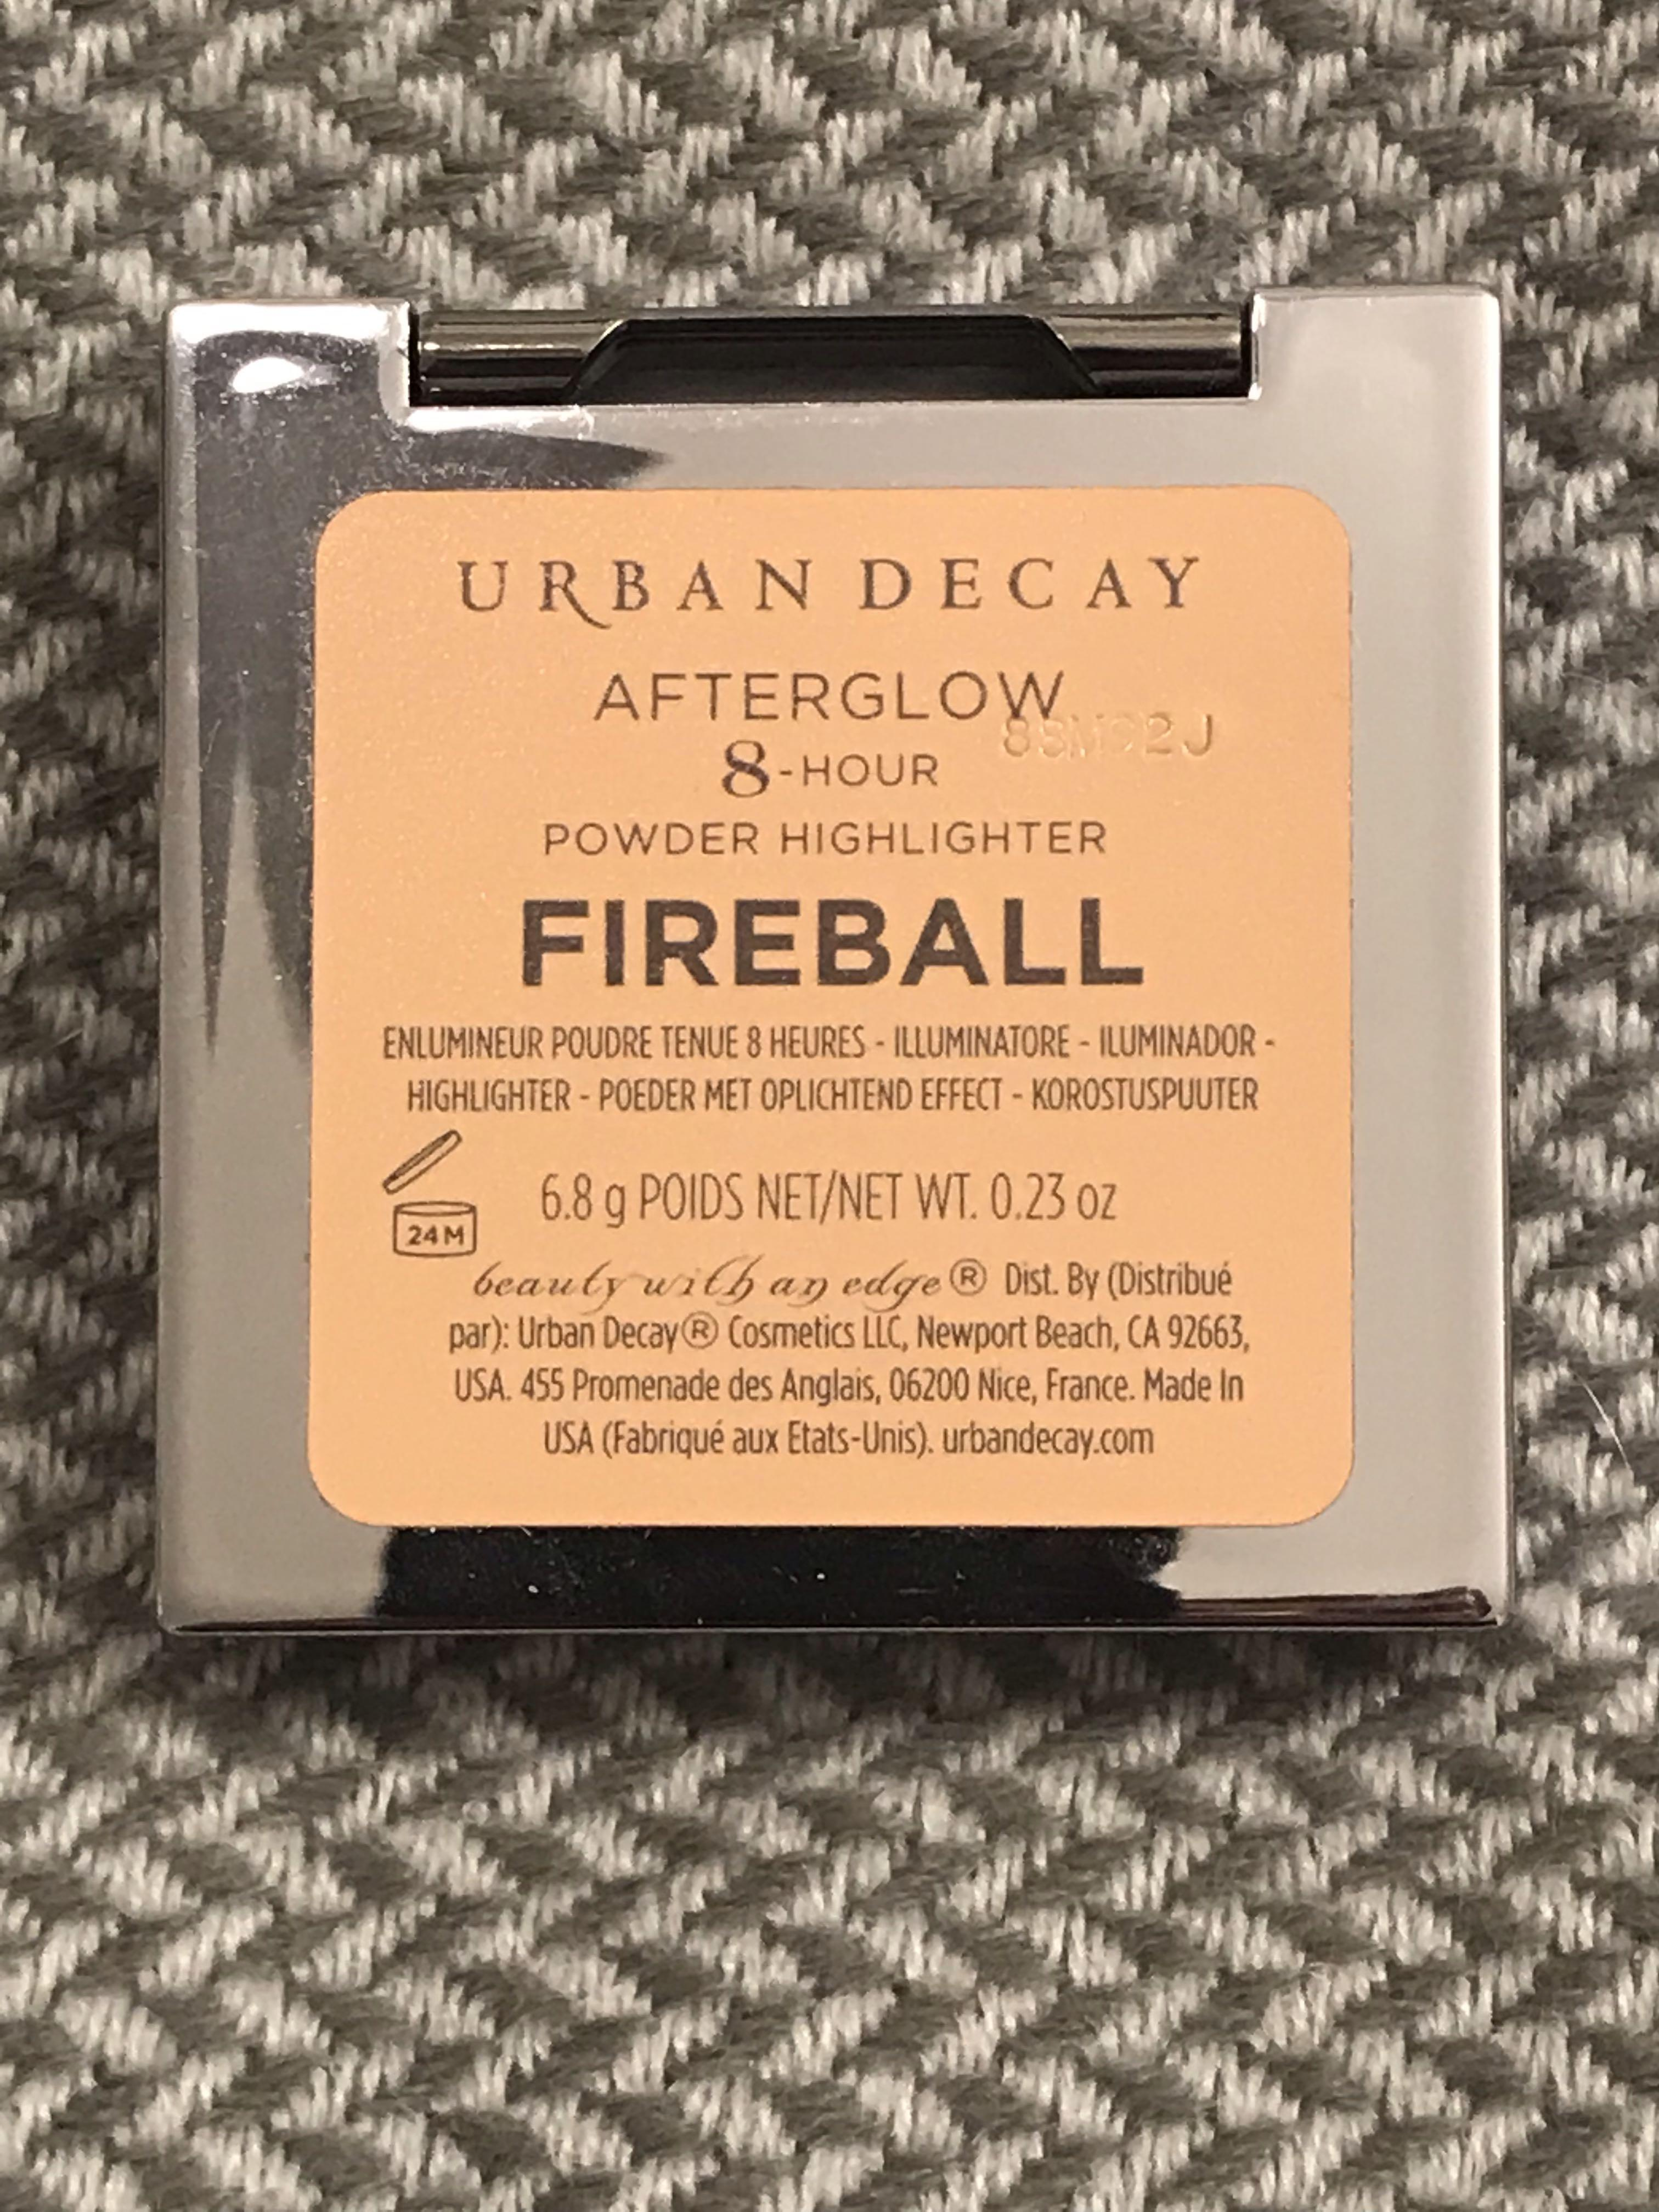 URBAN DECAY AFTERGLOW 8 HOUR POWDER HIGHLIGHTER- FIREBALL AUTHENTIC